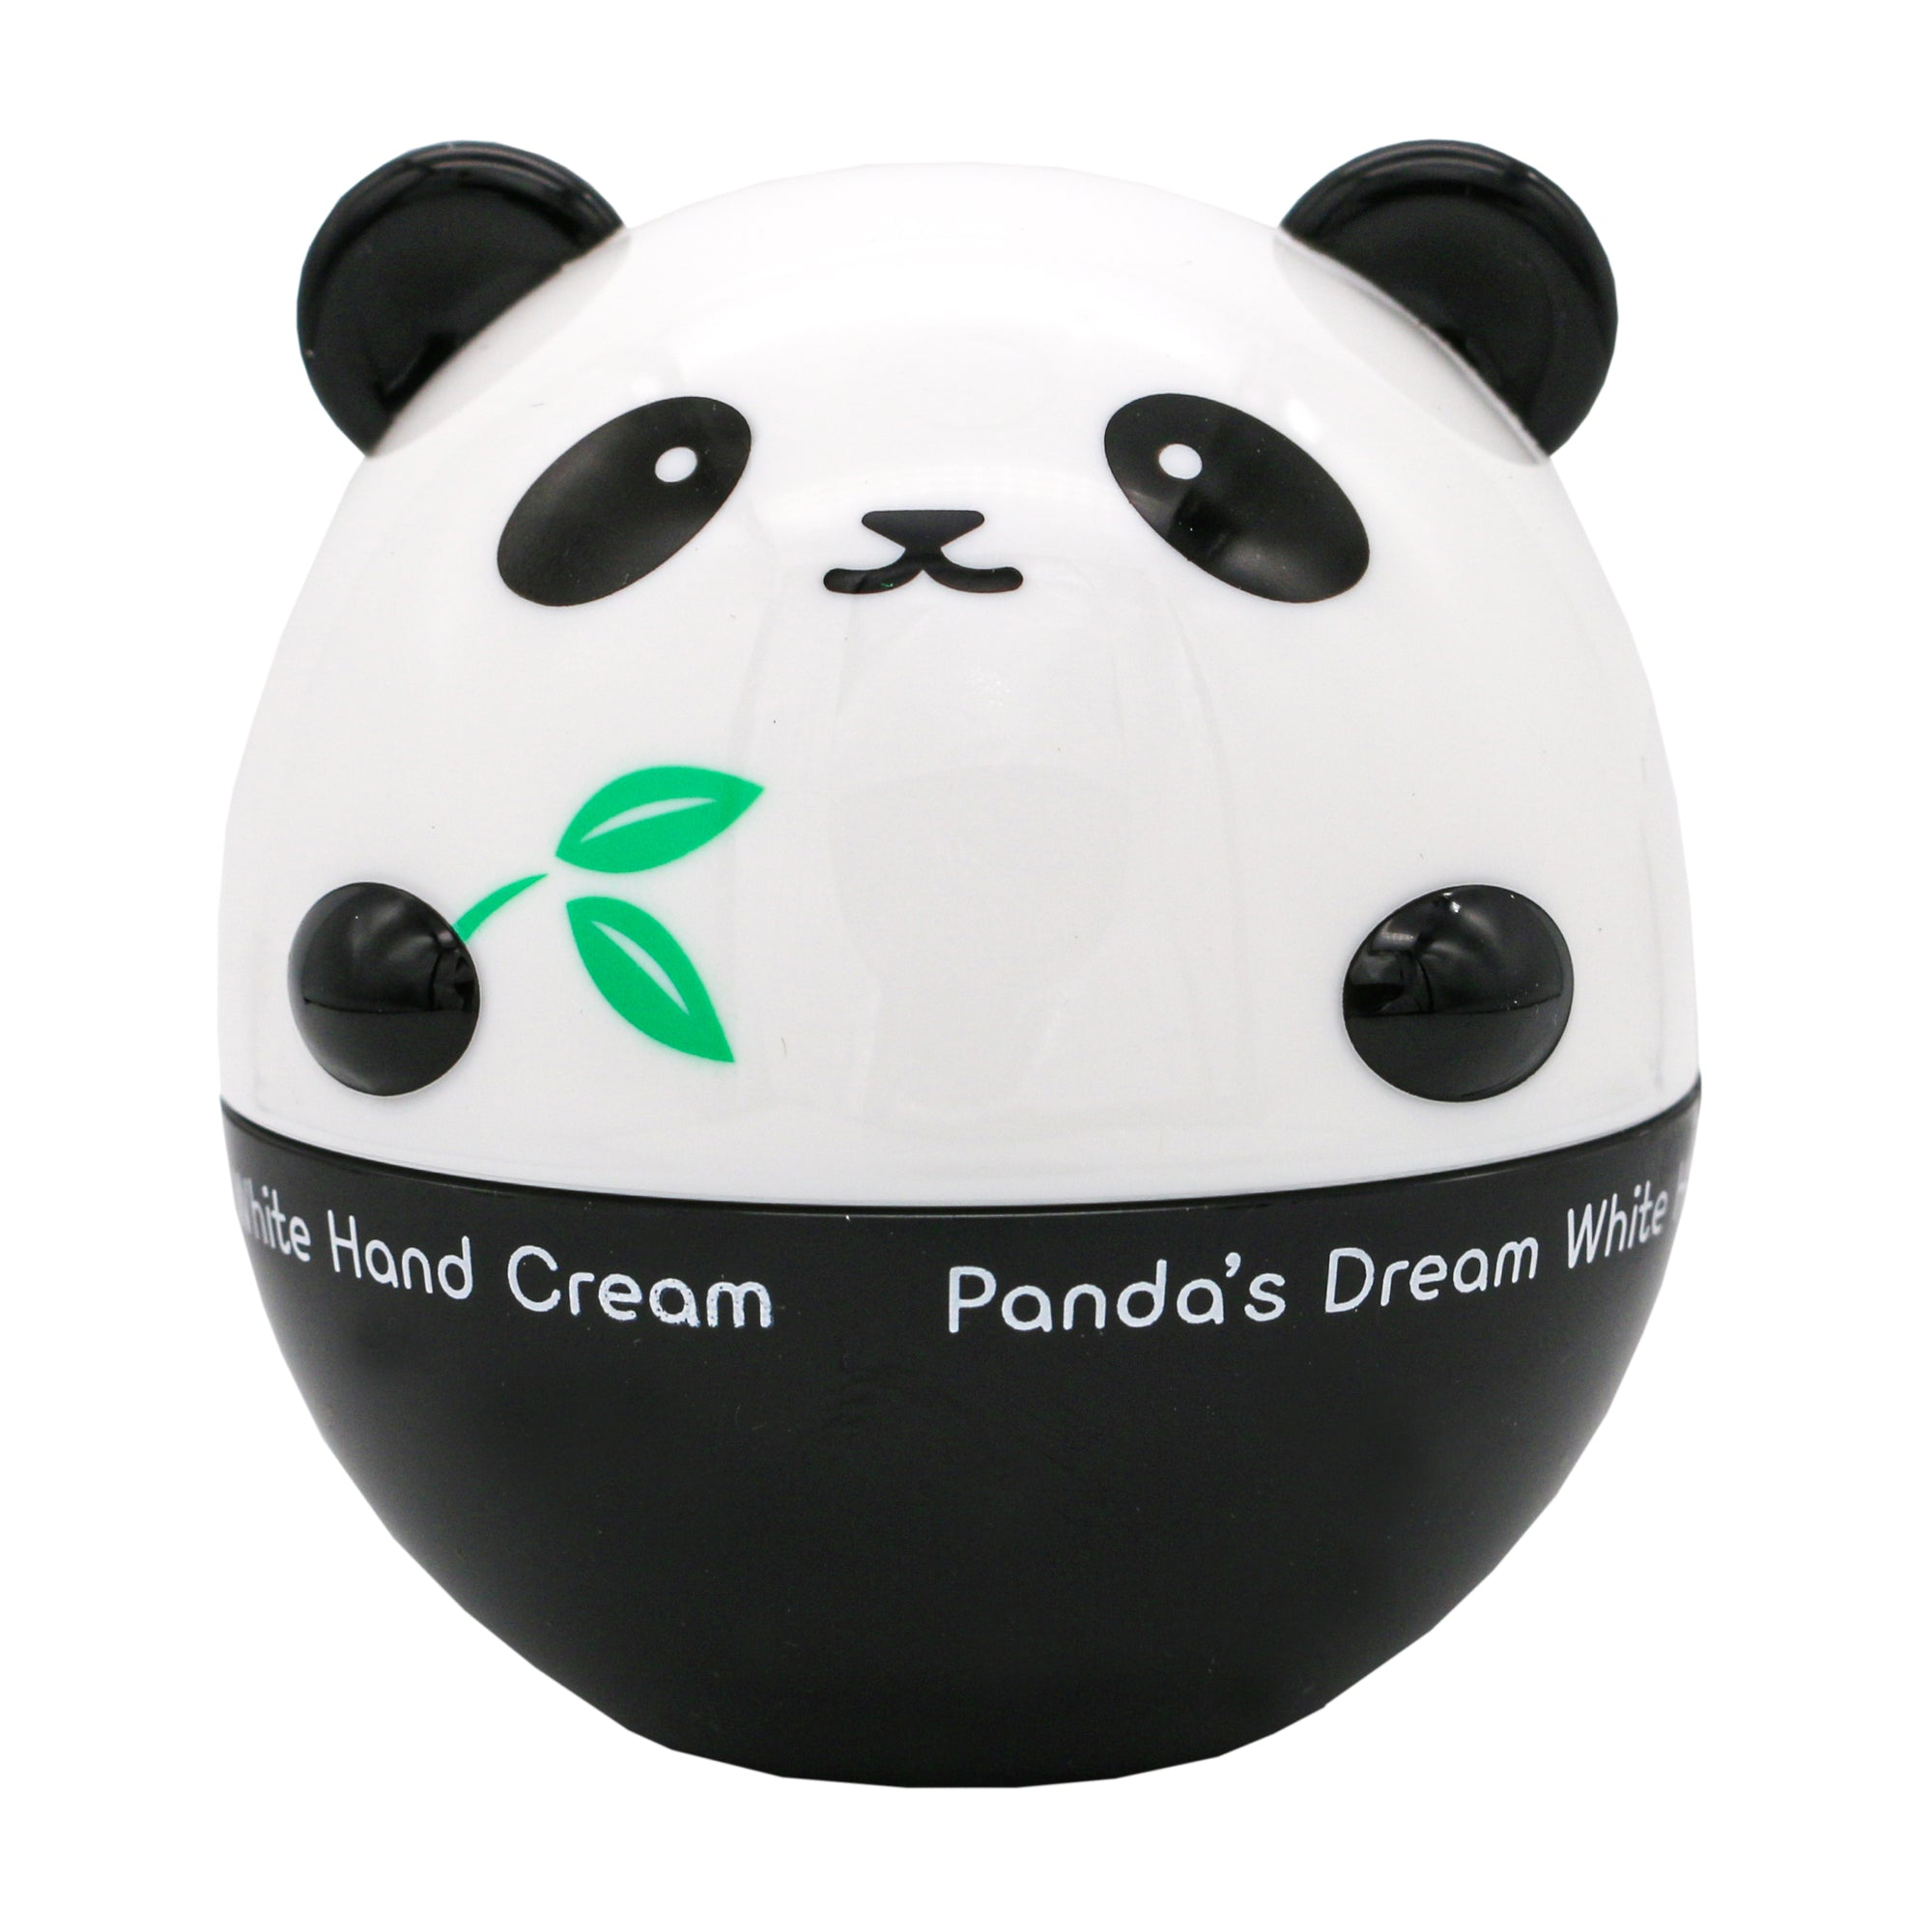 TONYMOLY Panda's Dream Hand Cream - Brightening & Hydrating | Korean Skin Care